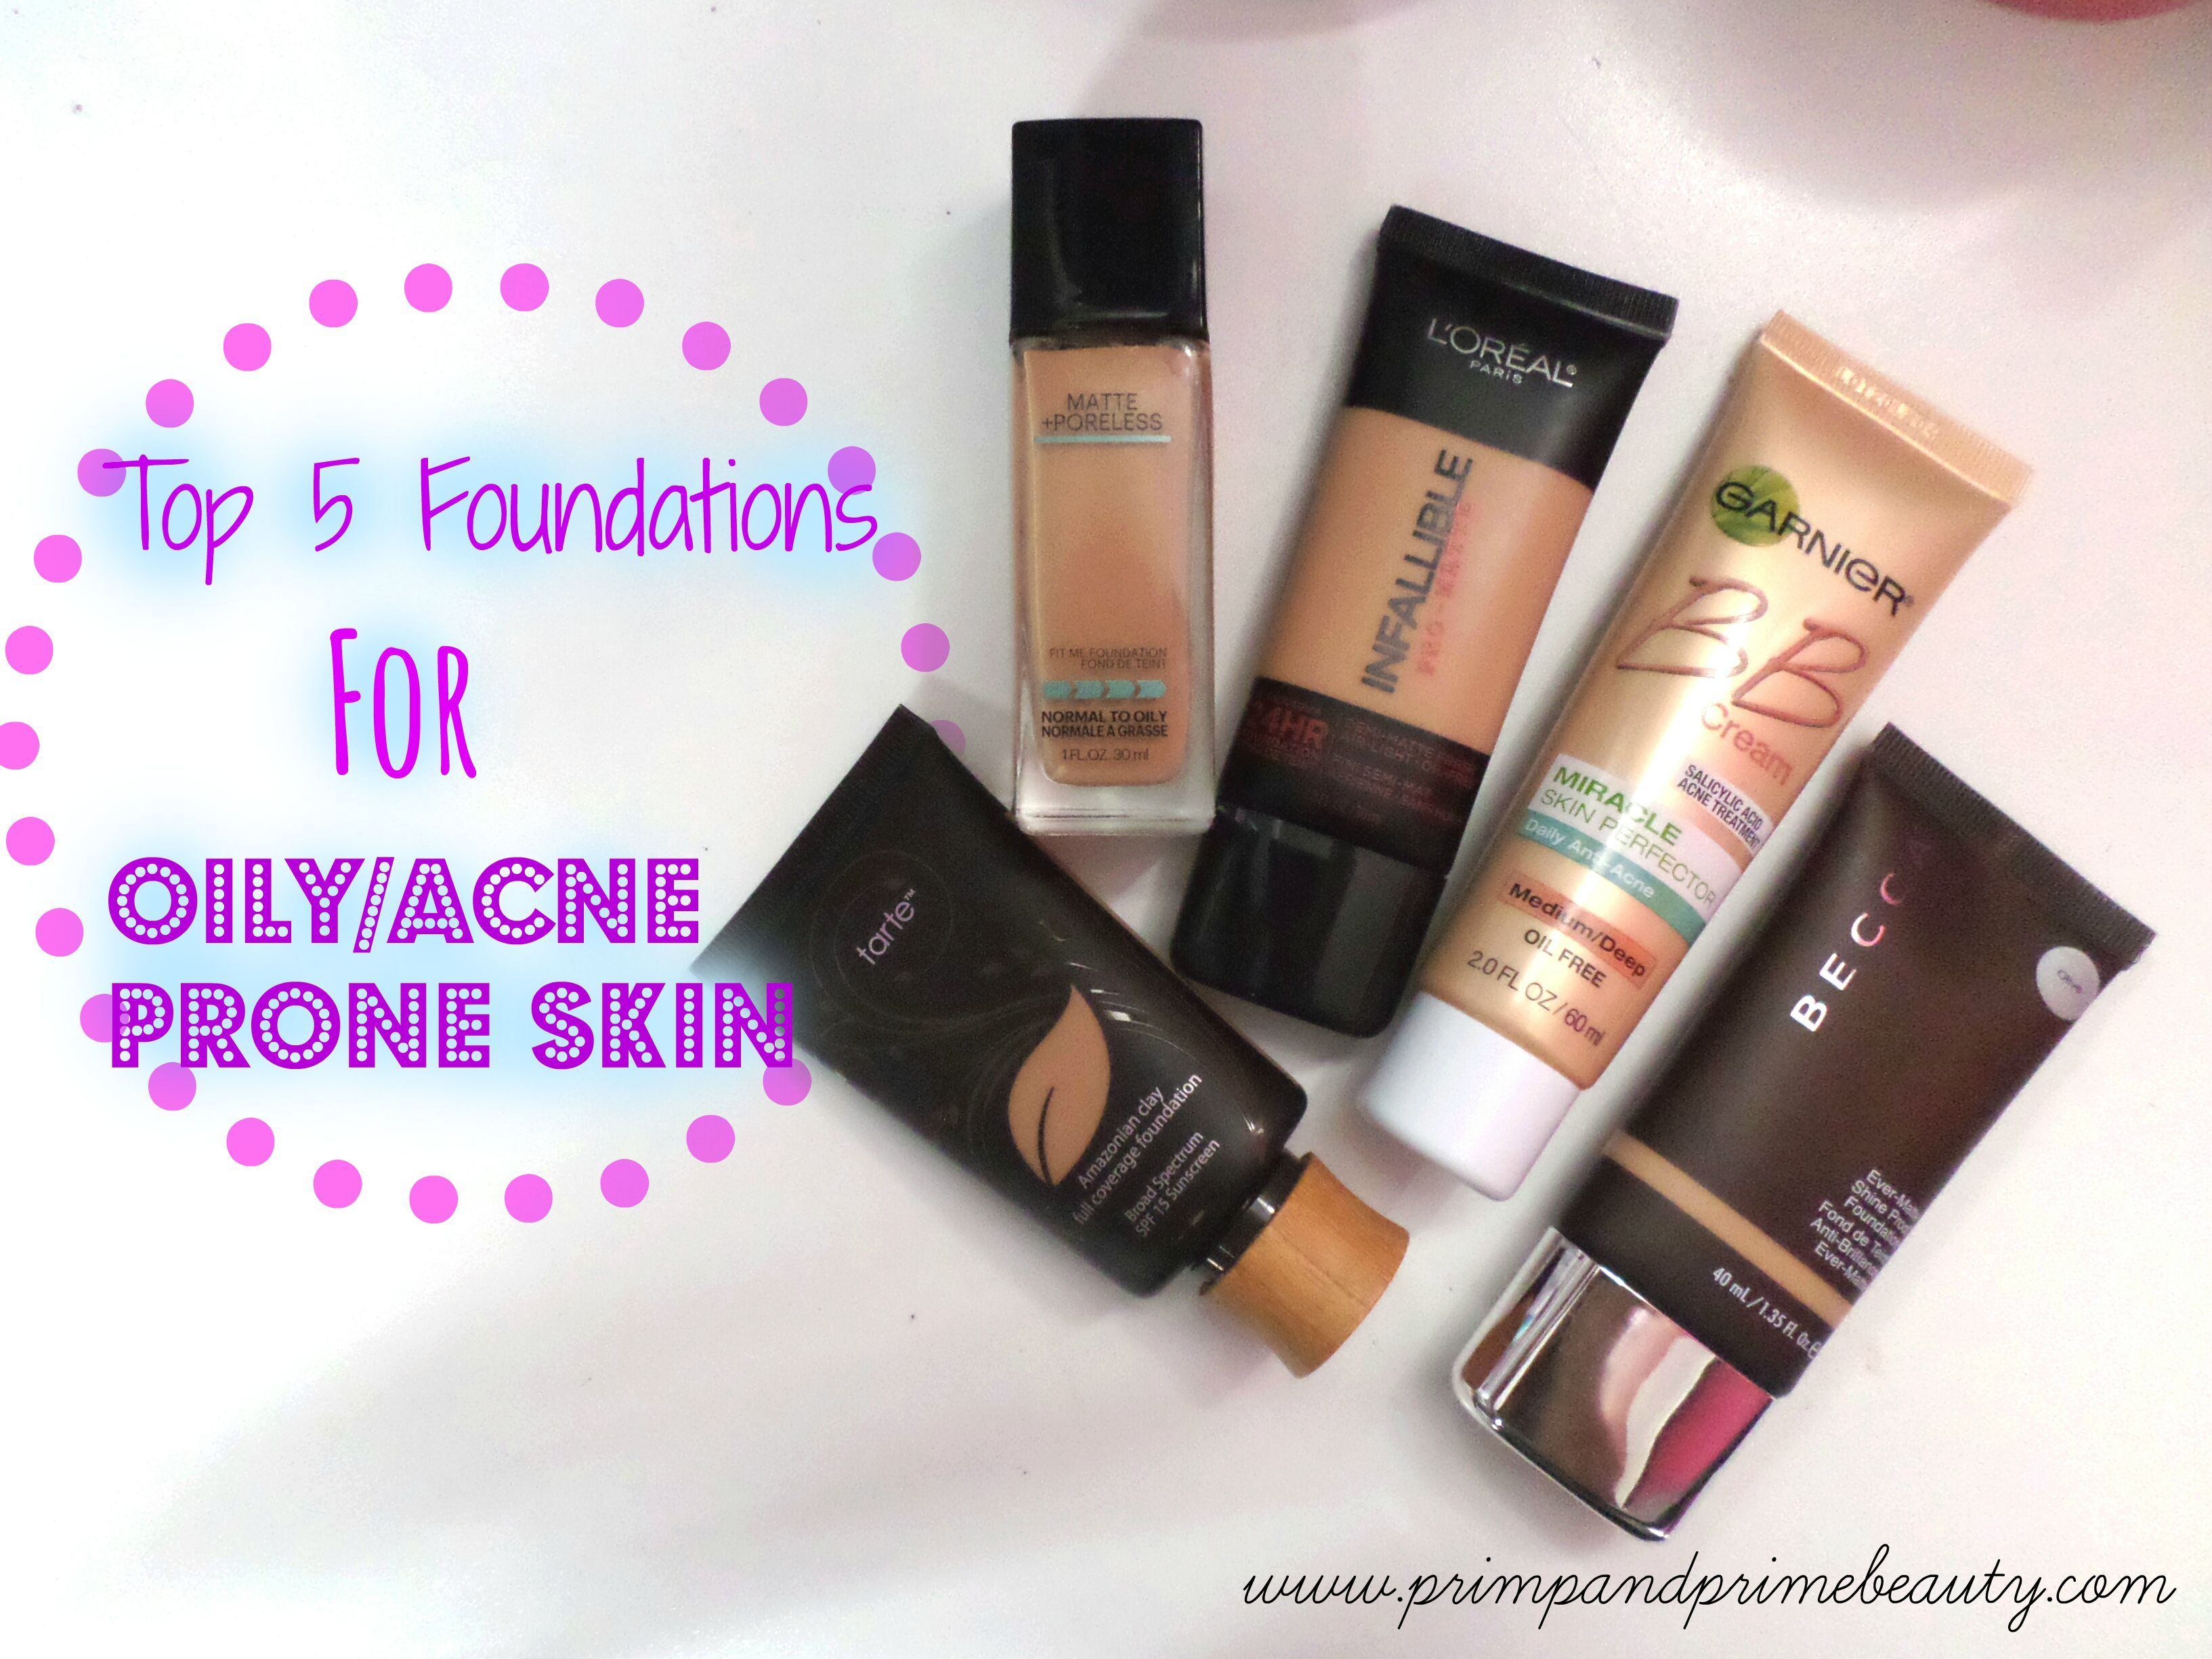 Top 5 Foundations For Oily/Acne Prone Skin Foundation